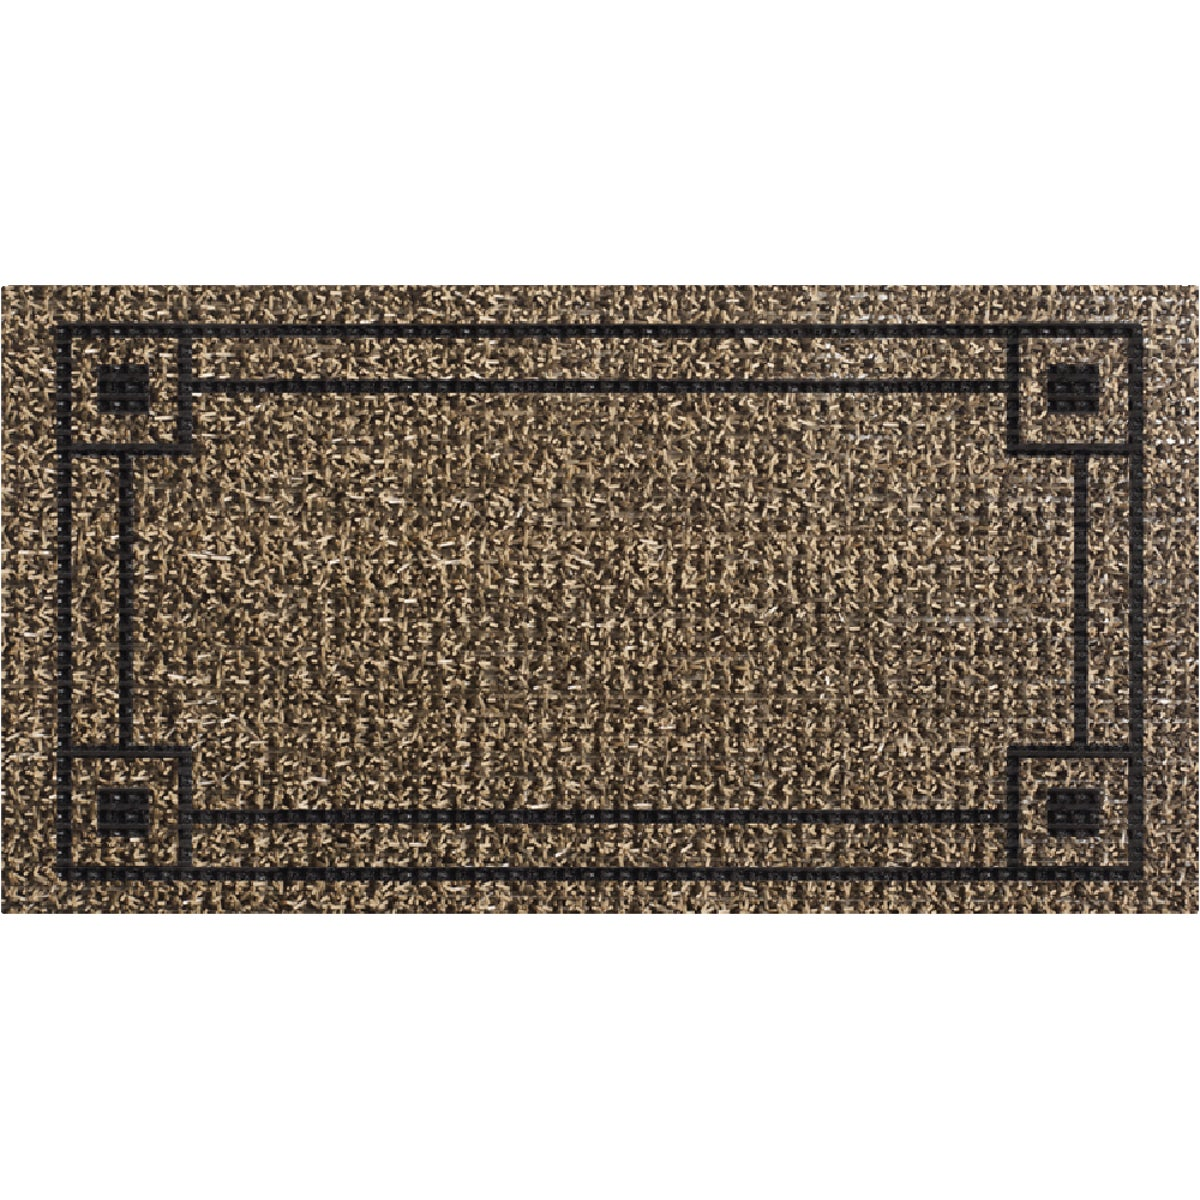 CHARCOAL DOORMAT - 10270036 by Grassworx